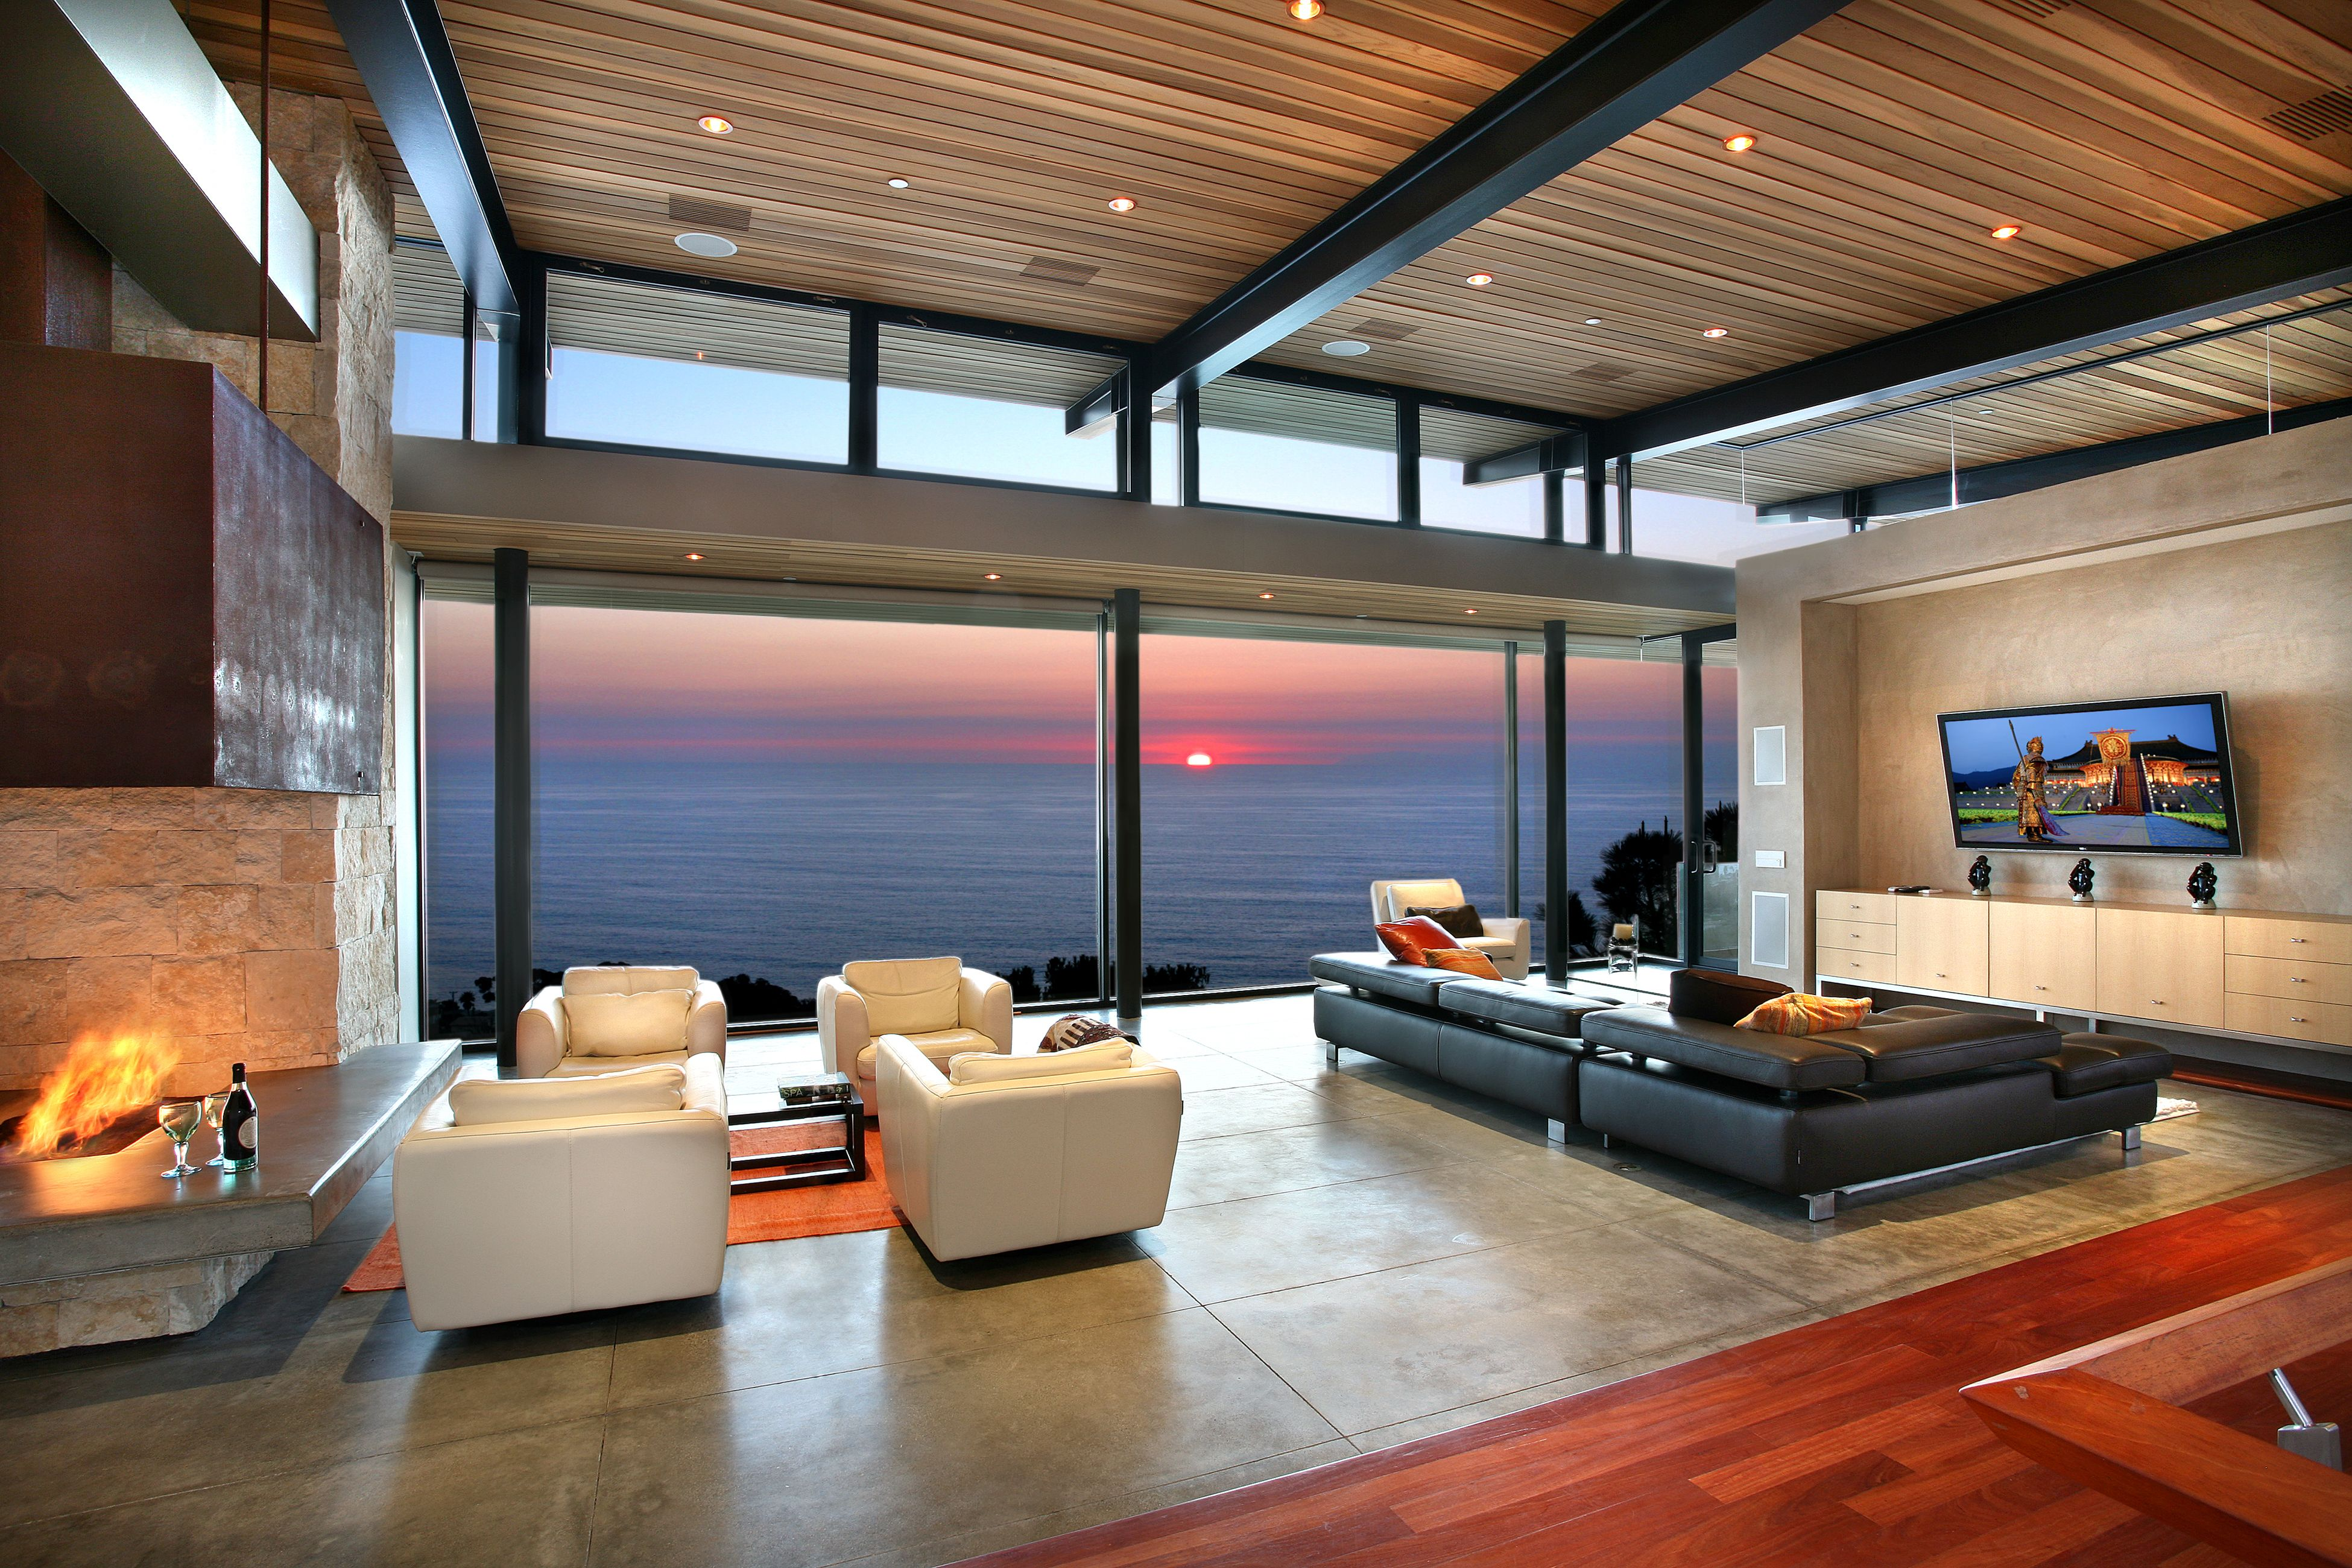 Beautiful Panoramic Ocean View Living Room Design With Modern White